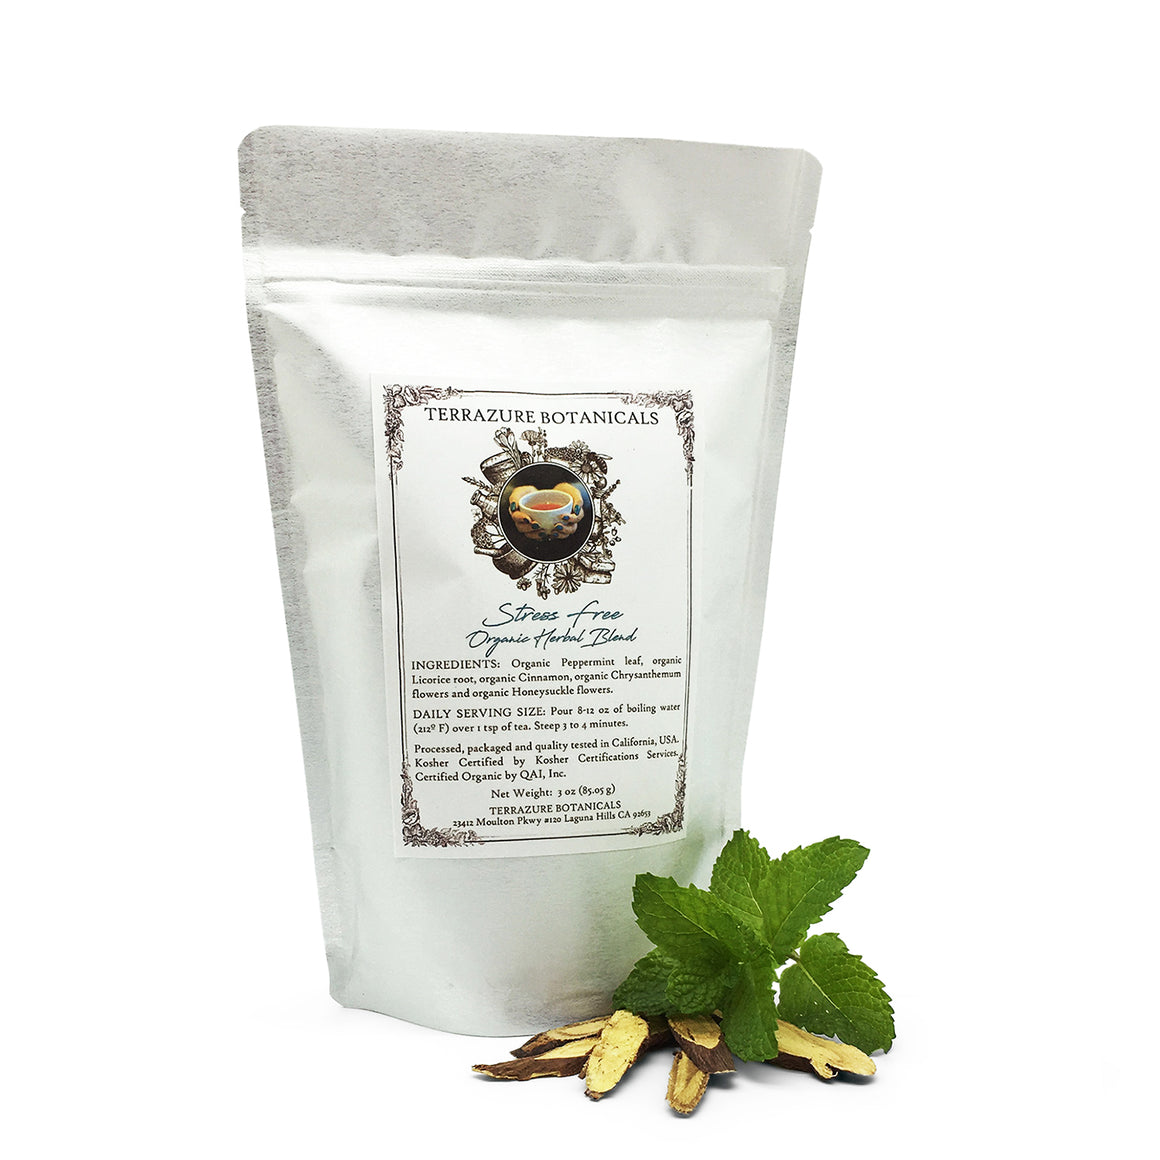 STRESS FREE Organic Bulk Herbal Tea